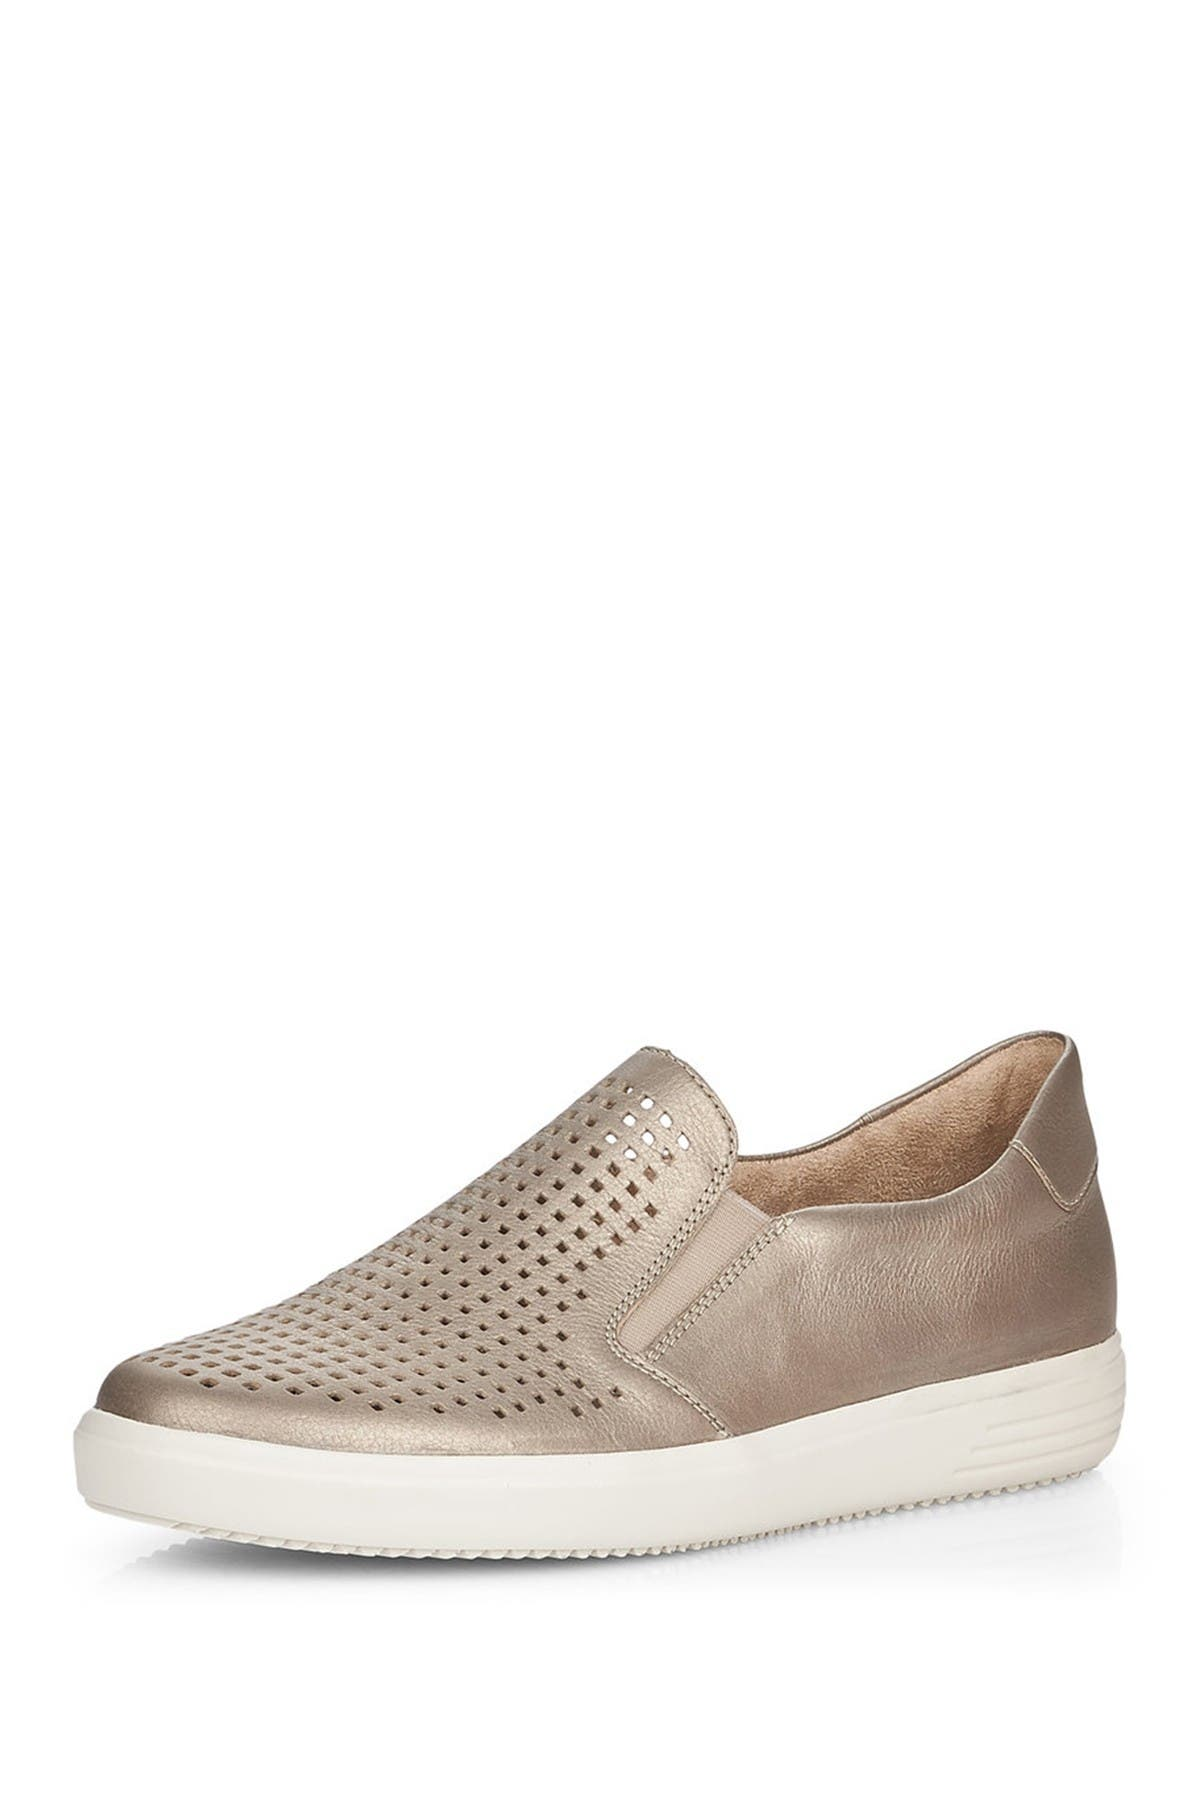 Image of Remonte Cecilia Perforated Slip-On Sneaker